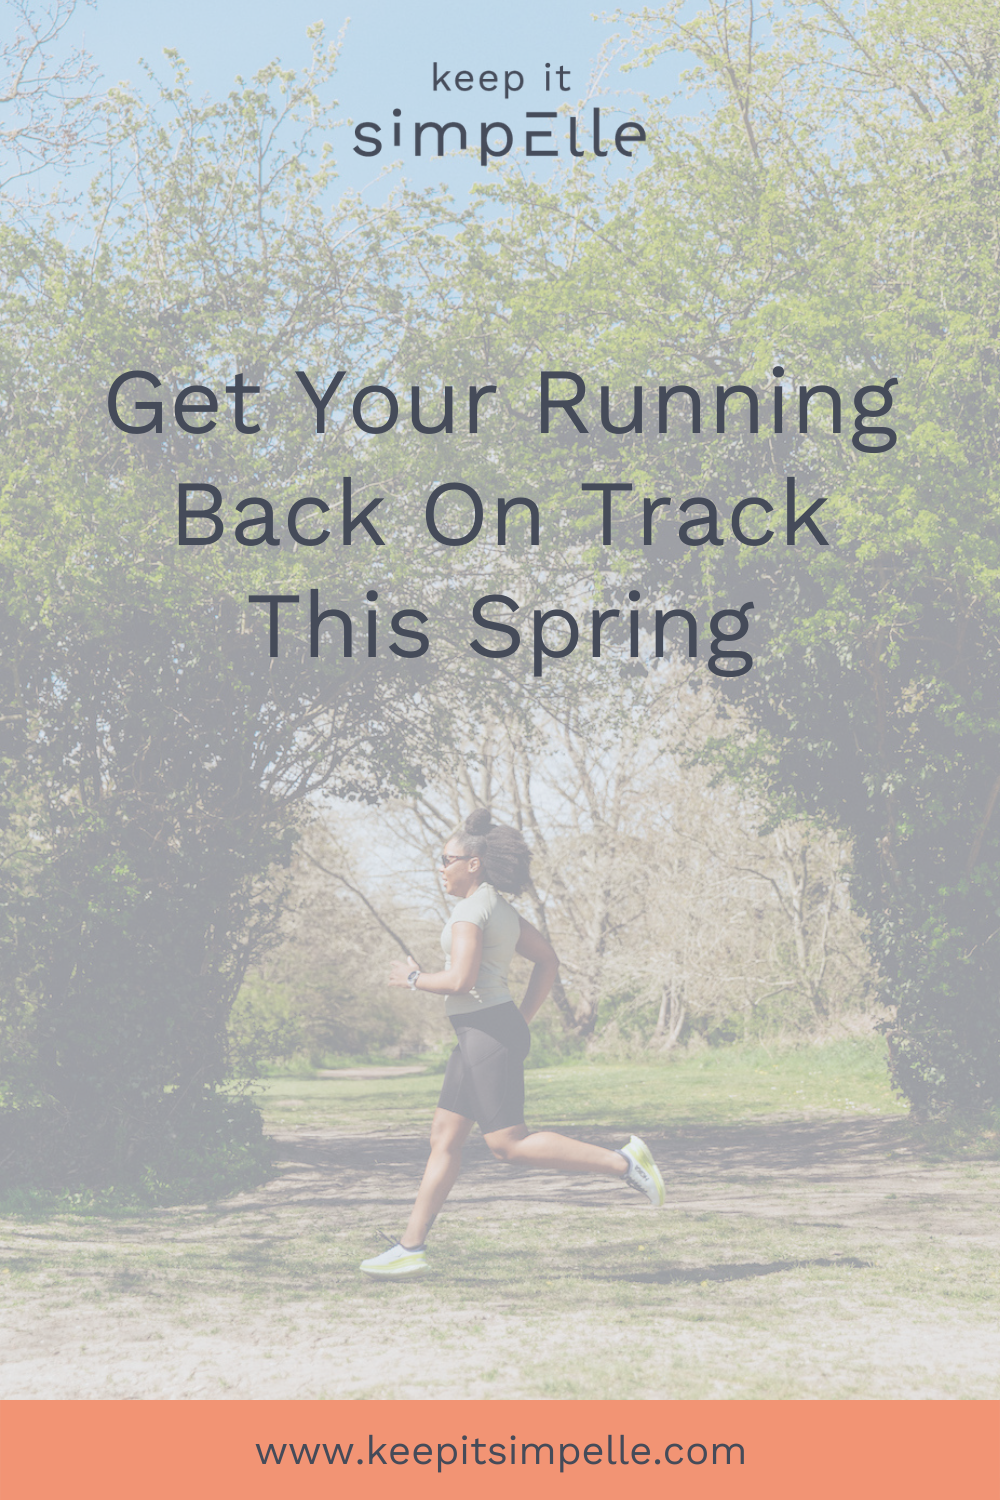 Get Your Running Back On Track This Spring with lululemon running